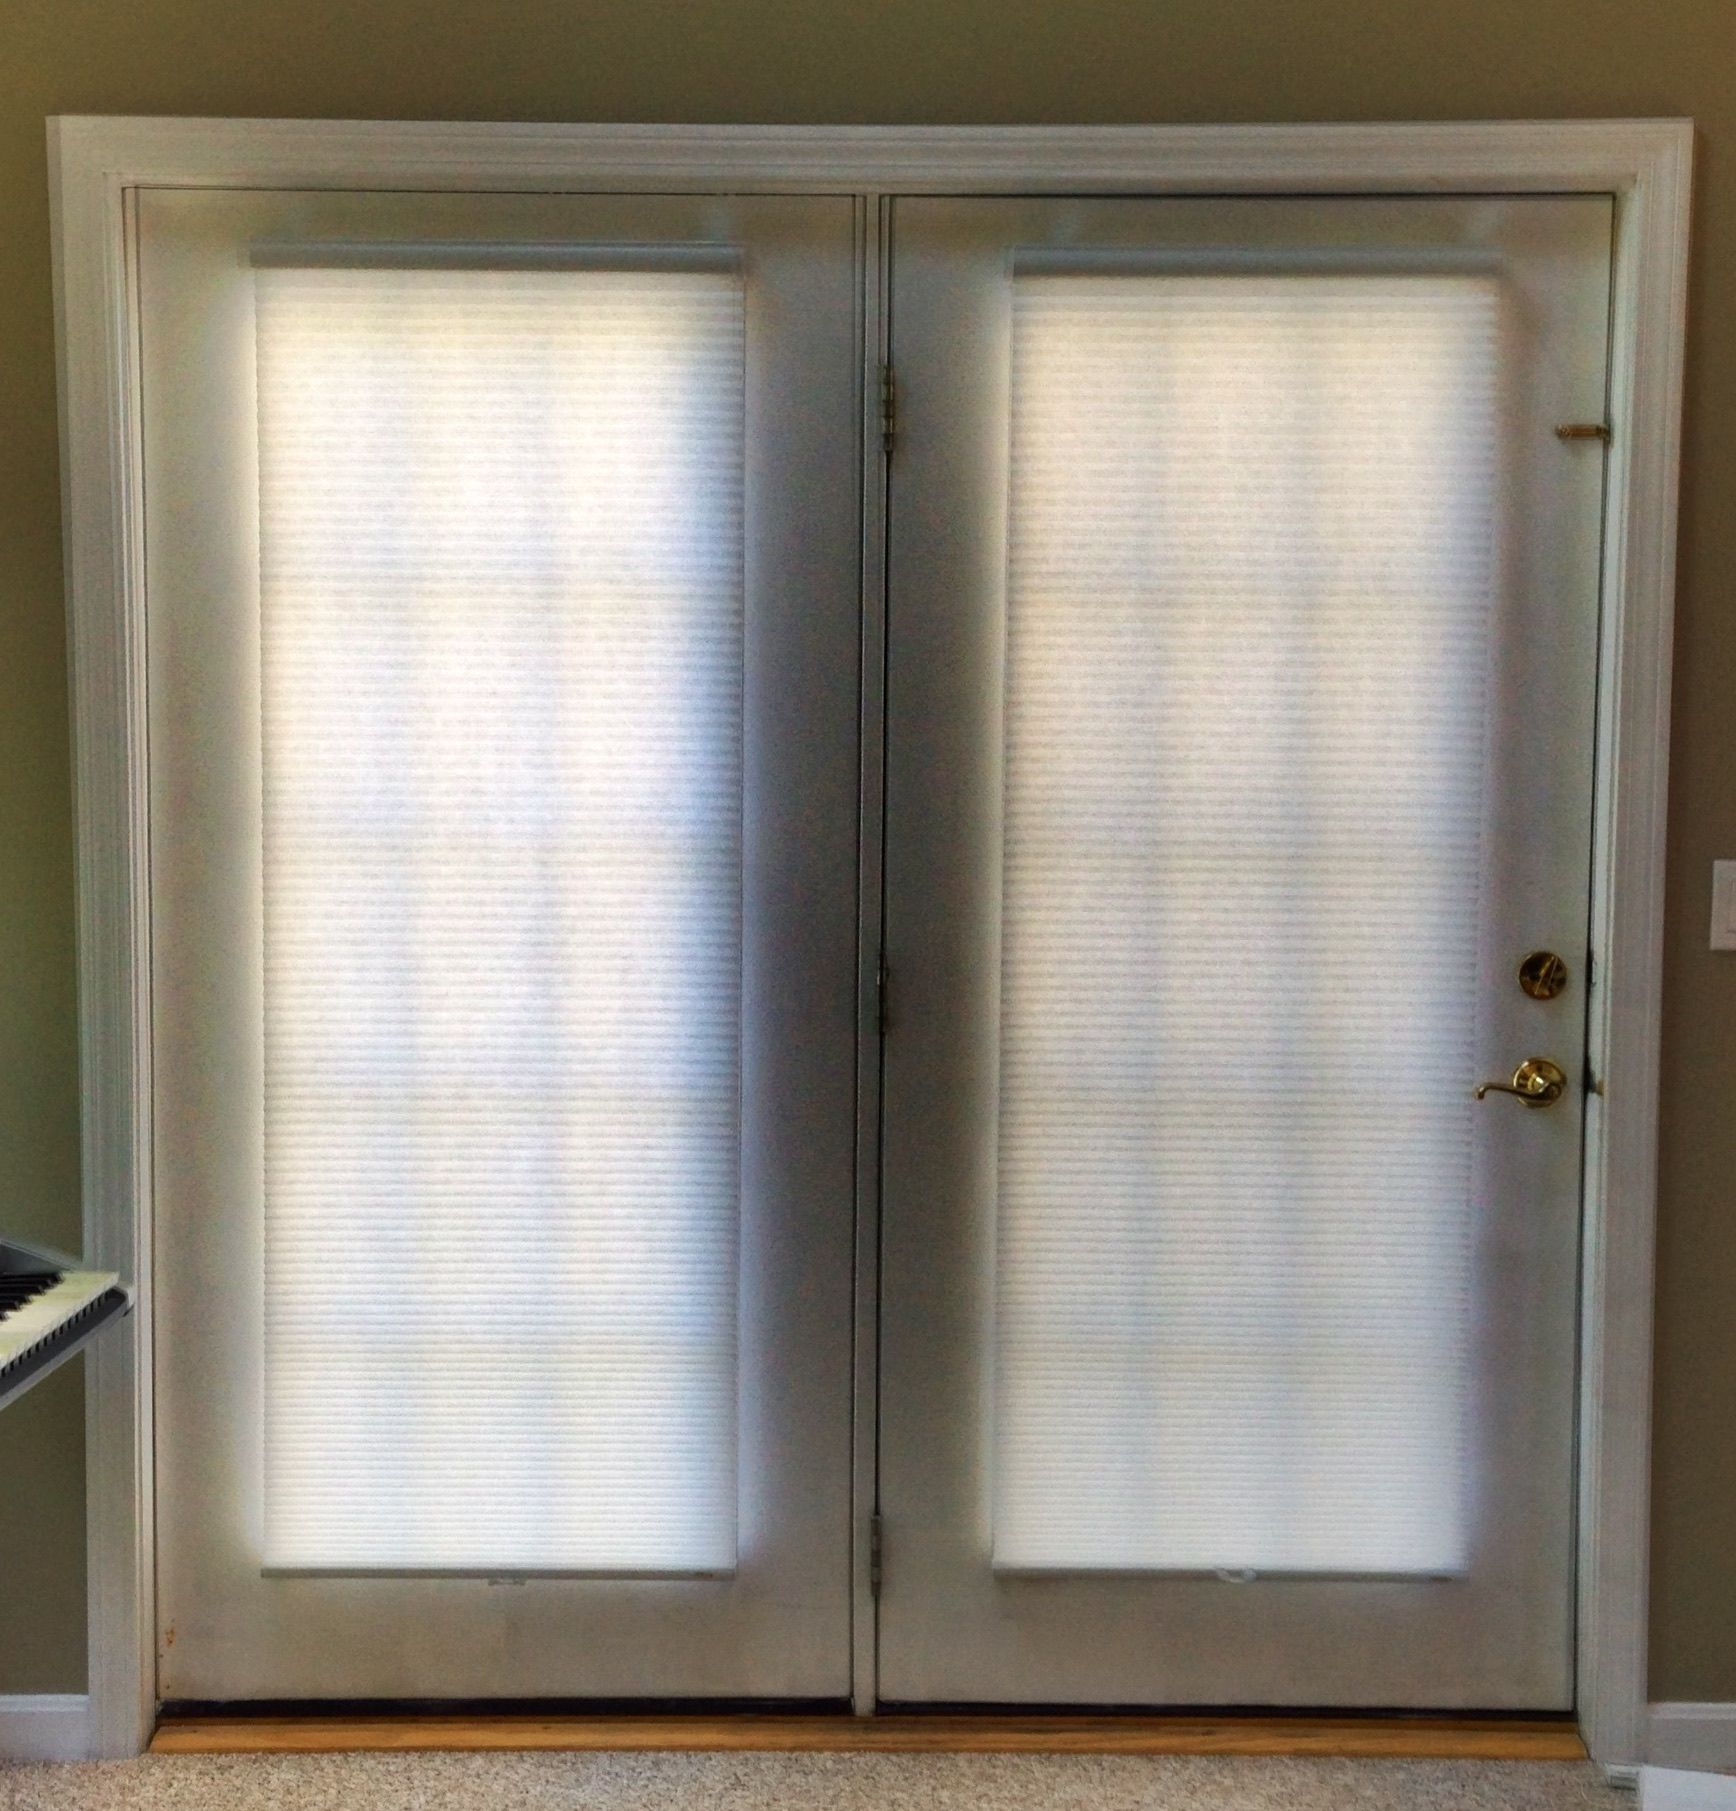 Cordless cellular shades for french doors living spaces ideas